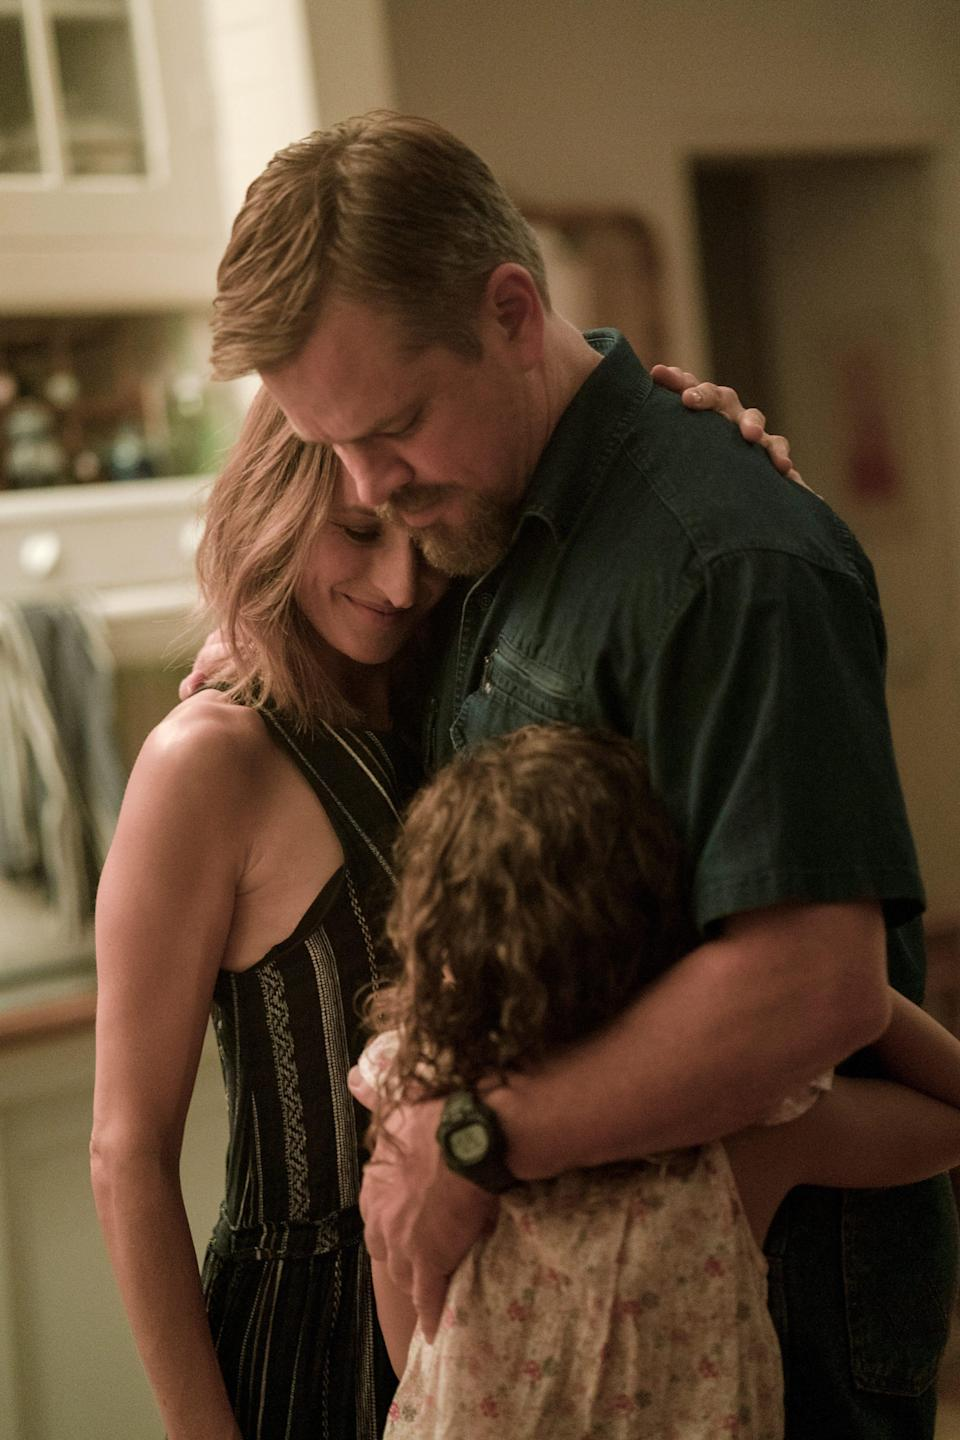 """Bill (Matt Damon) forms a close bond with French actress Virginie (Camille Cottin) and 8-year-old Maya (Lilou Siauvaud) in """"Stillwater."""""""